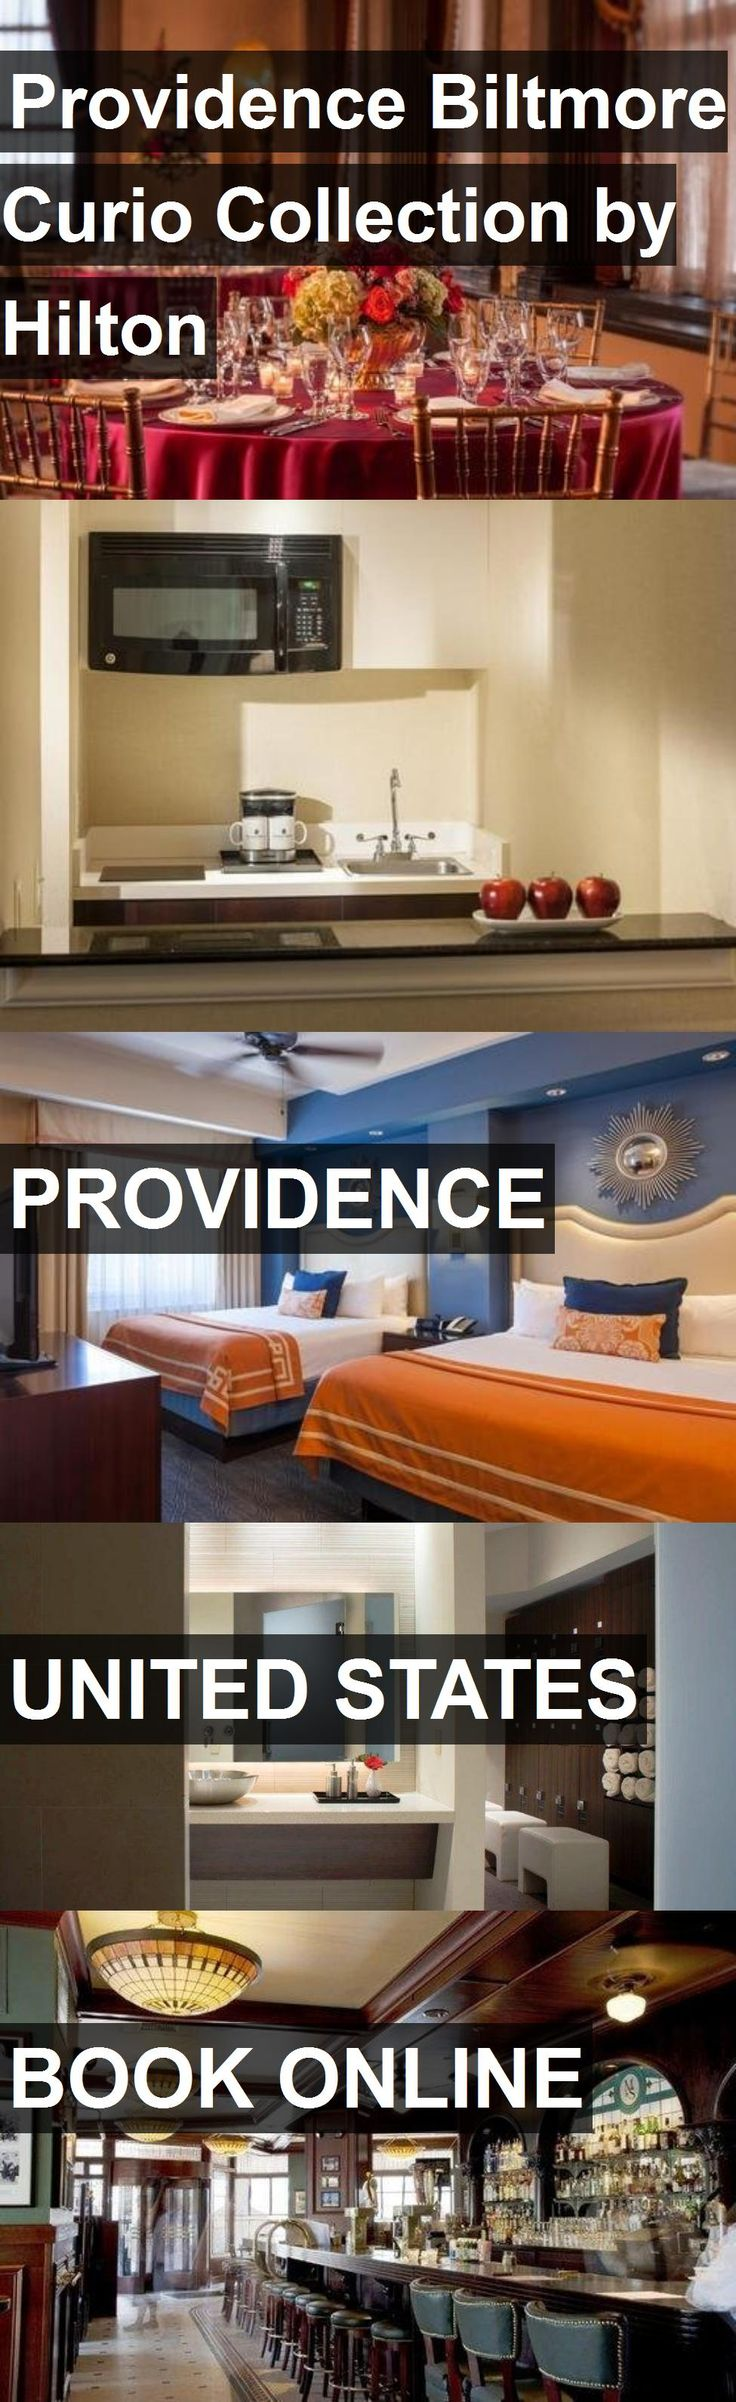 Hotel Providence Biltmore Curio Collection by Hilton in Providence, United States. For more information, photos, reviews and best prices please follow the link. #UnitedStates #Providence #travel #vacation #hotel